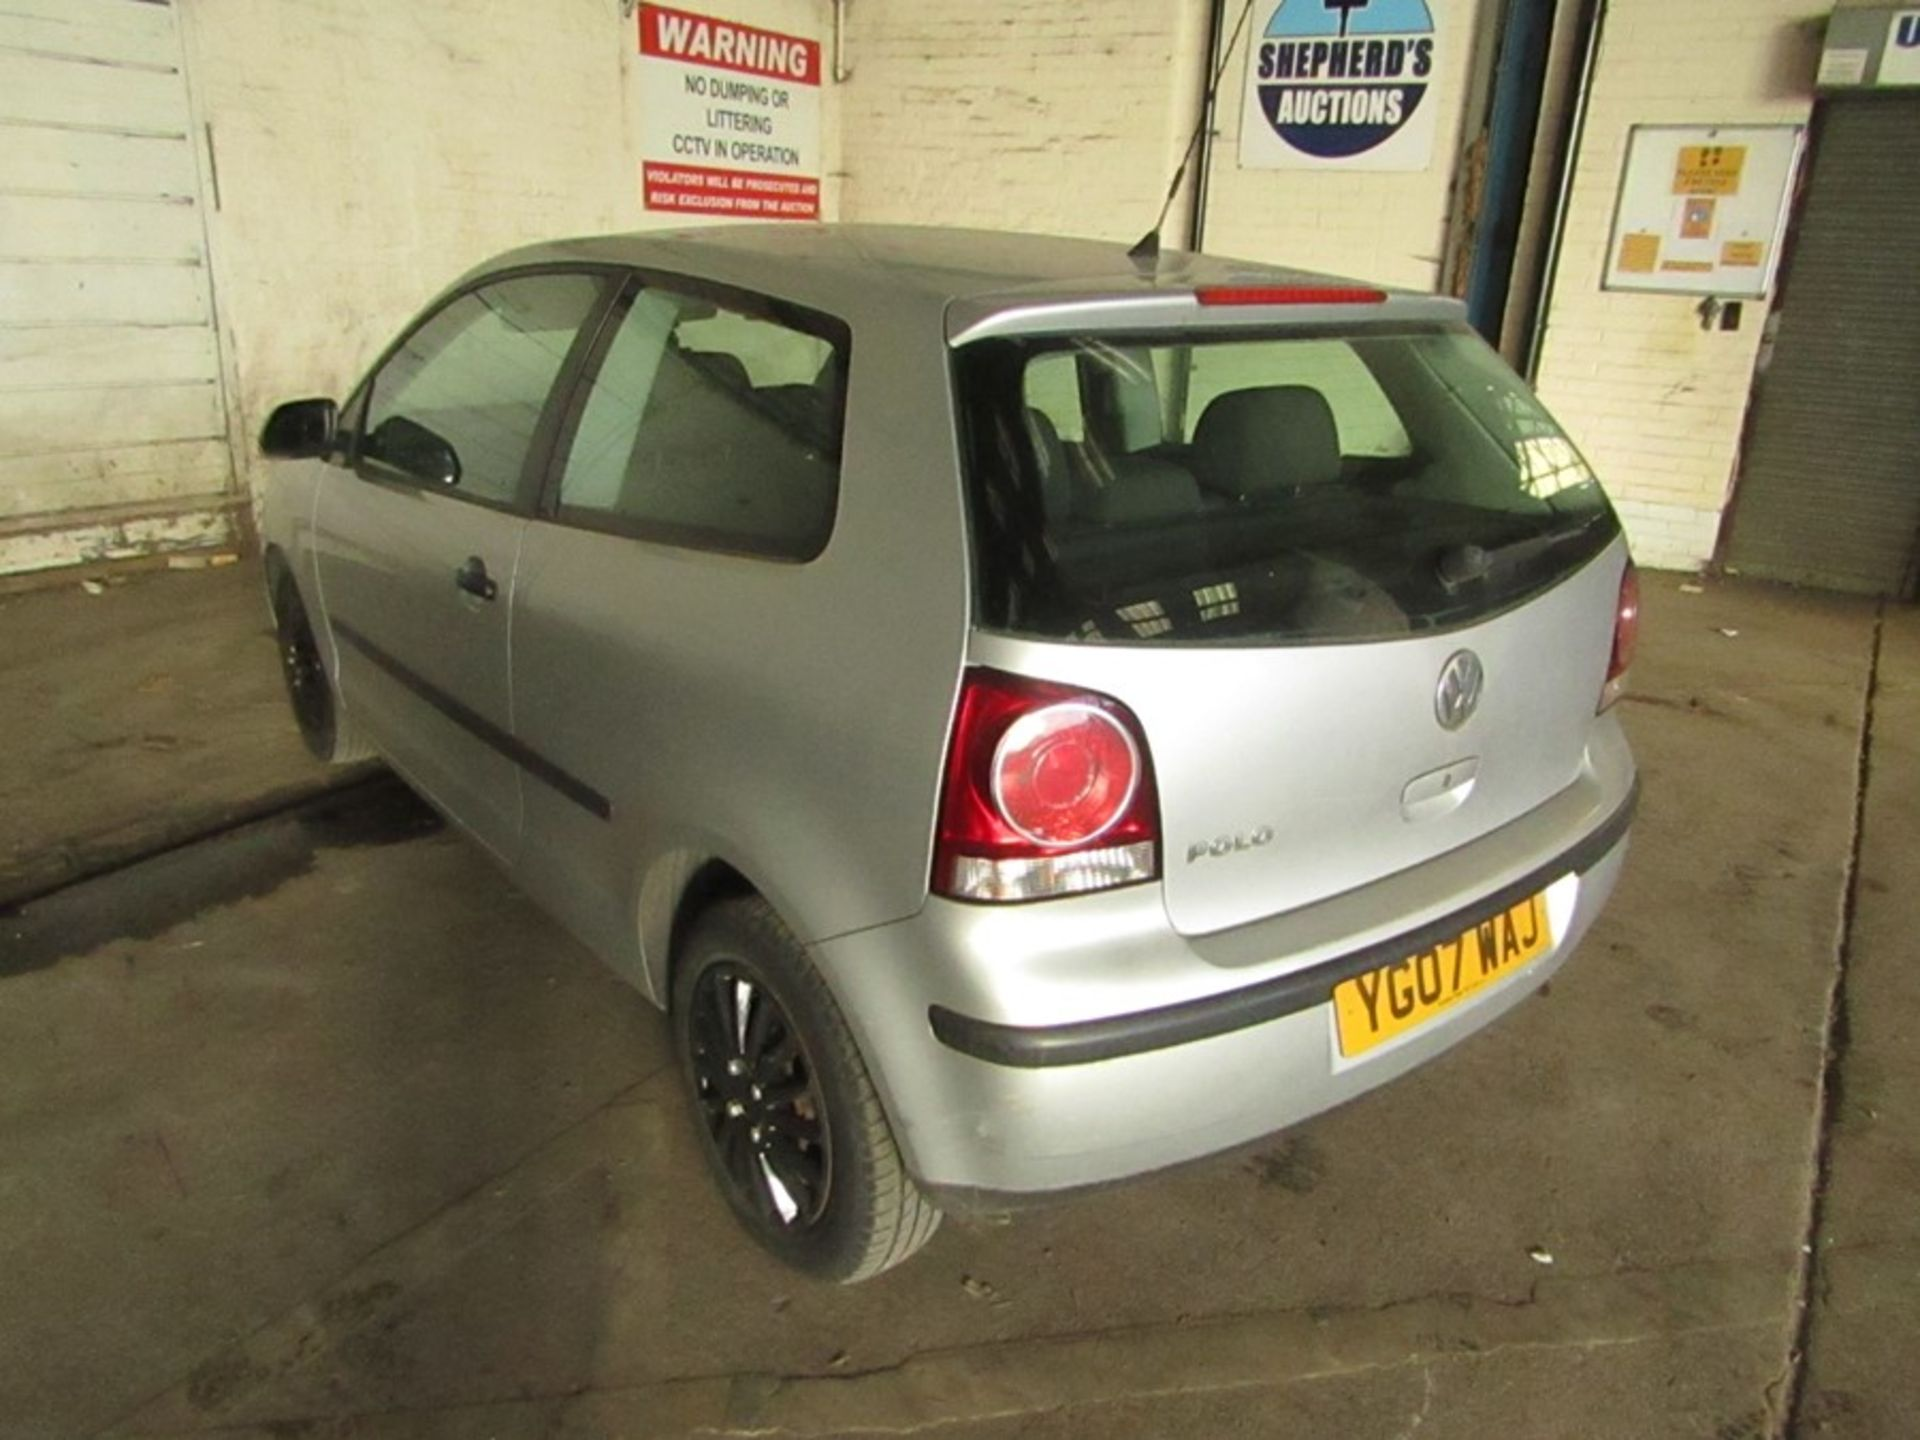 2007 Volkswagen Polo 1.2L hatchback, starts and drives 70,294 Miles Failed MOT 12/09/2020 due to; - Image 4 of 9